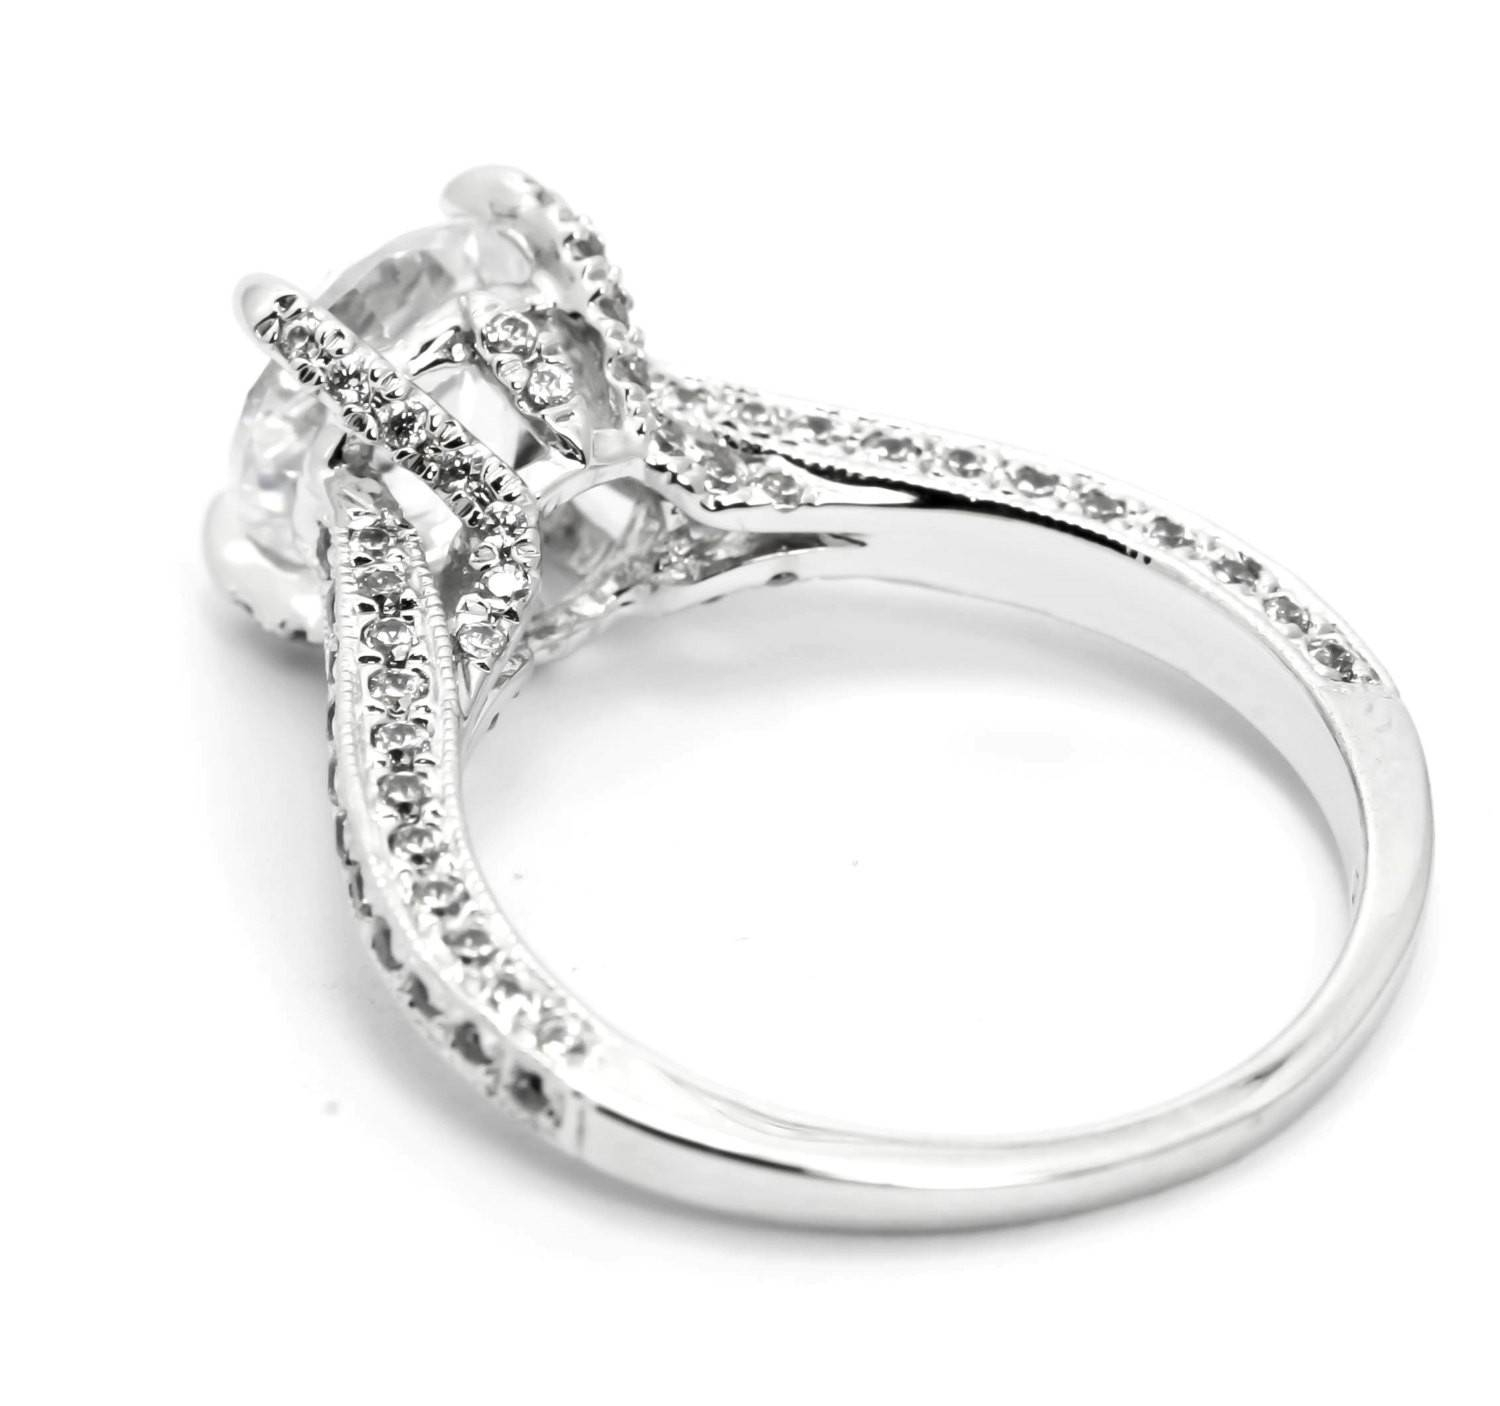 Unique Solitaire Diamond Rings | Wedding, Promise, Diamond In Most Current Unusual Anniversary Rings (Gallery 13 of 25)